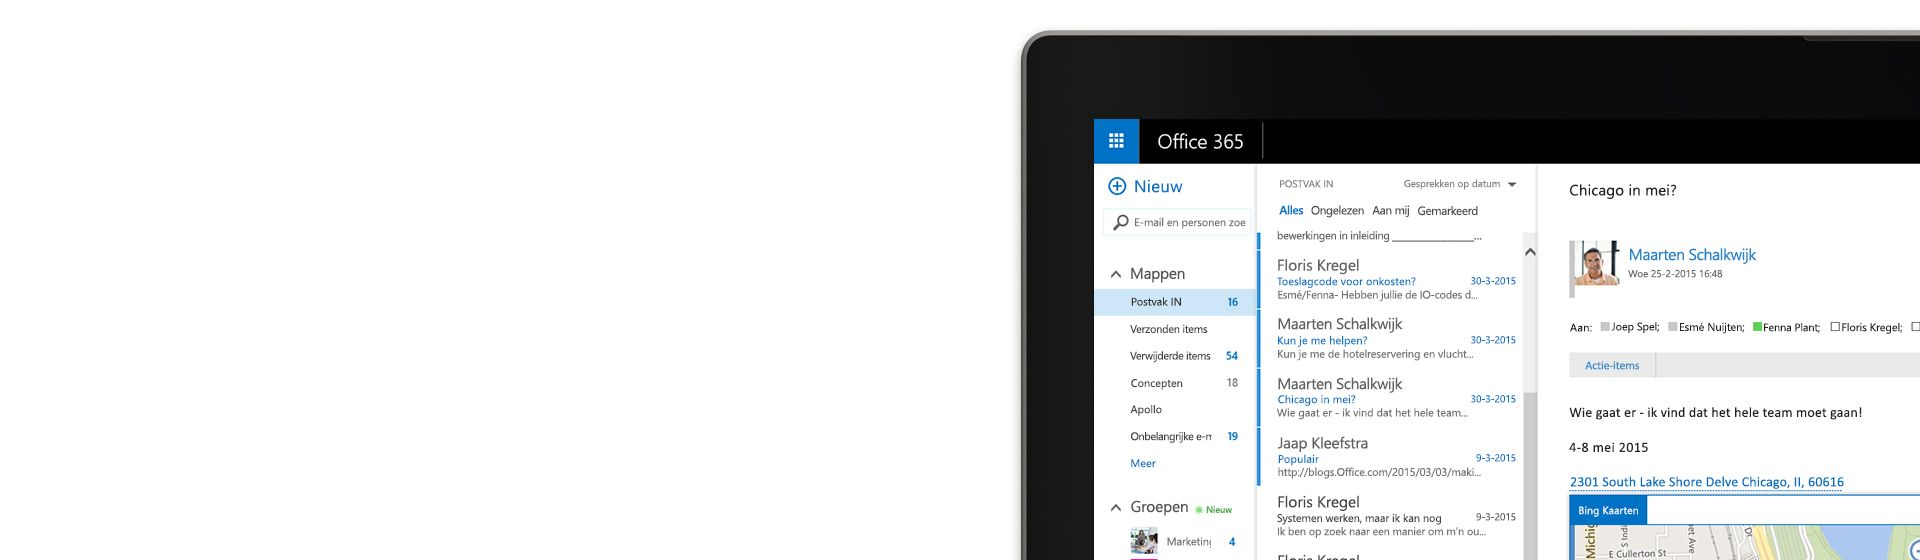 De hoek van een computerscherm met een Postvak In in Office 365